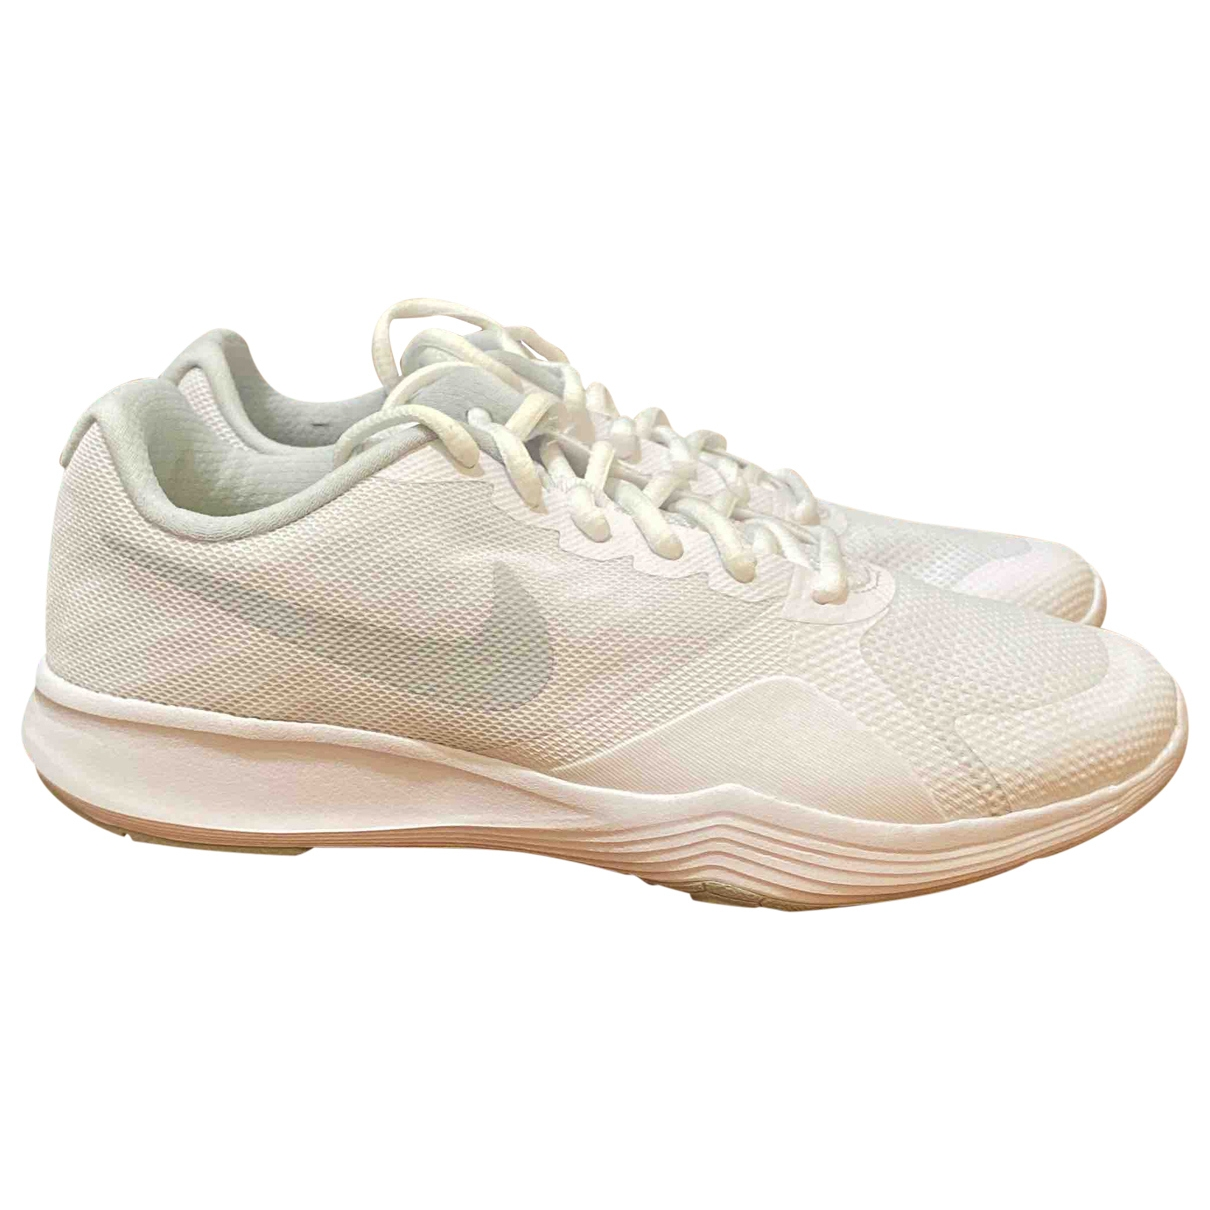 Nike \N White Cloth Trainers for Women 38 EU